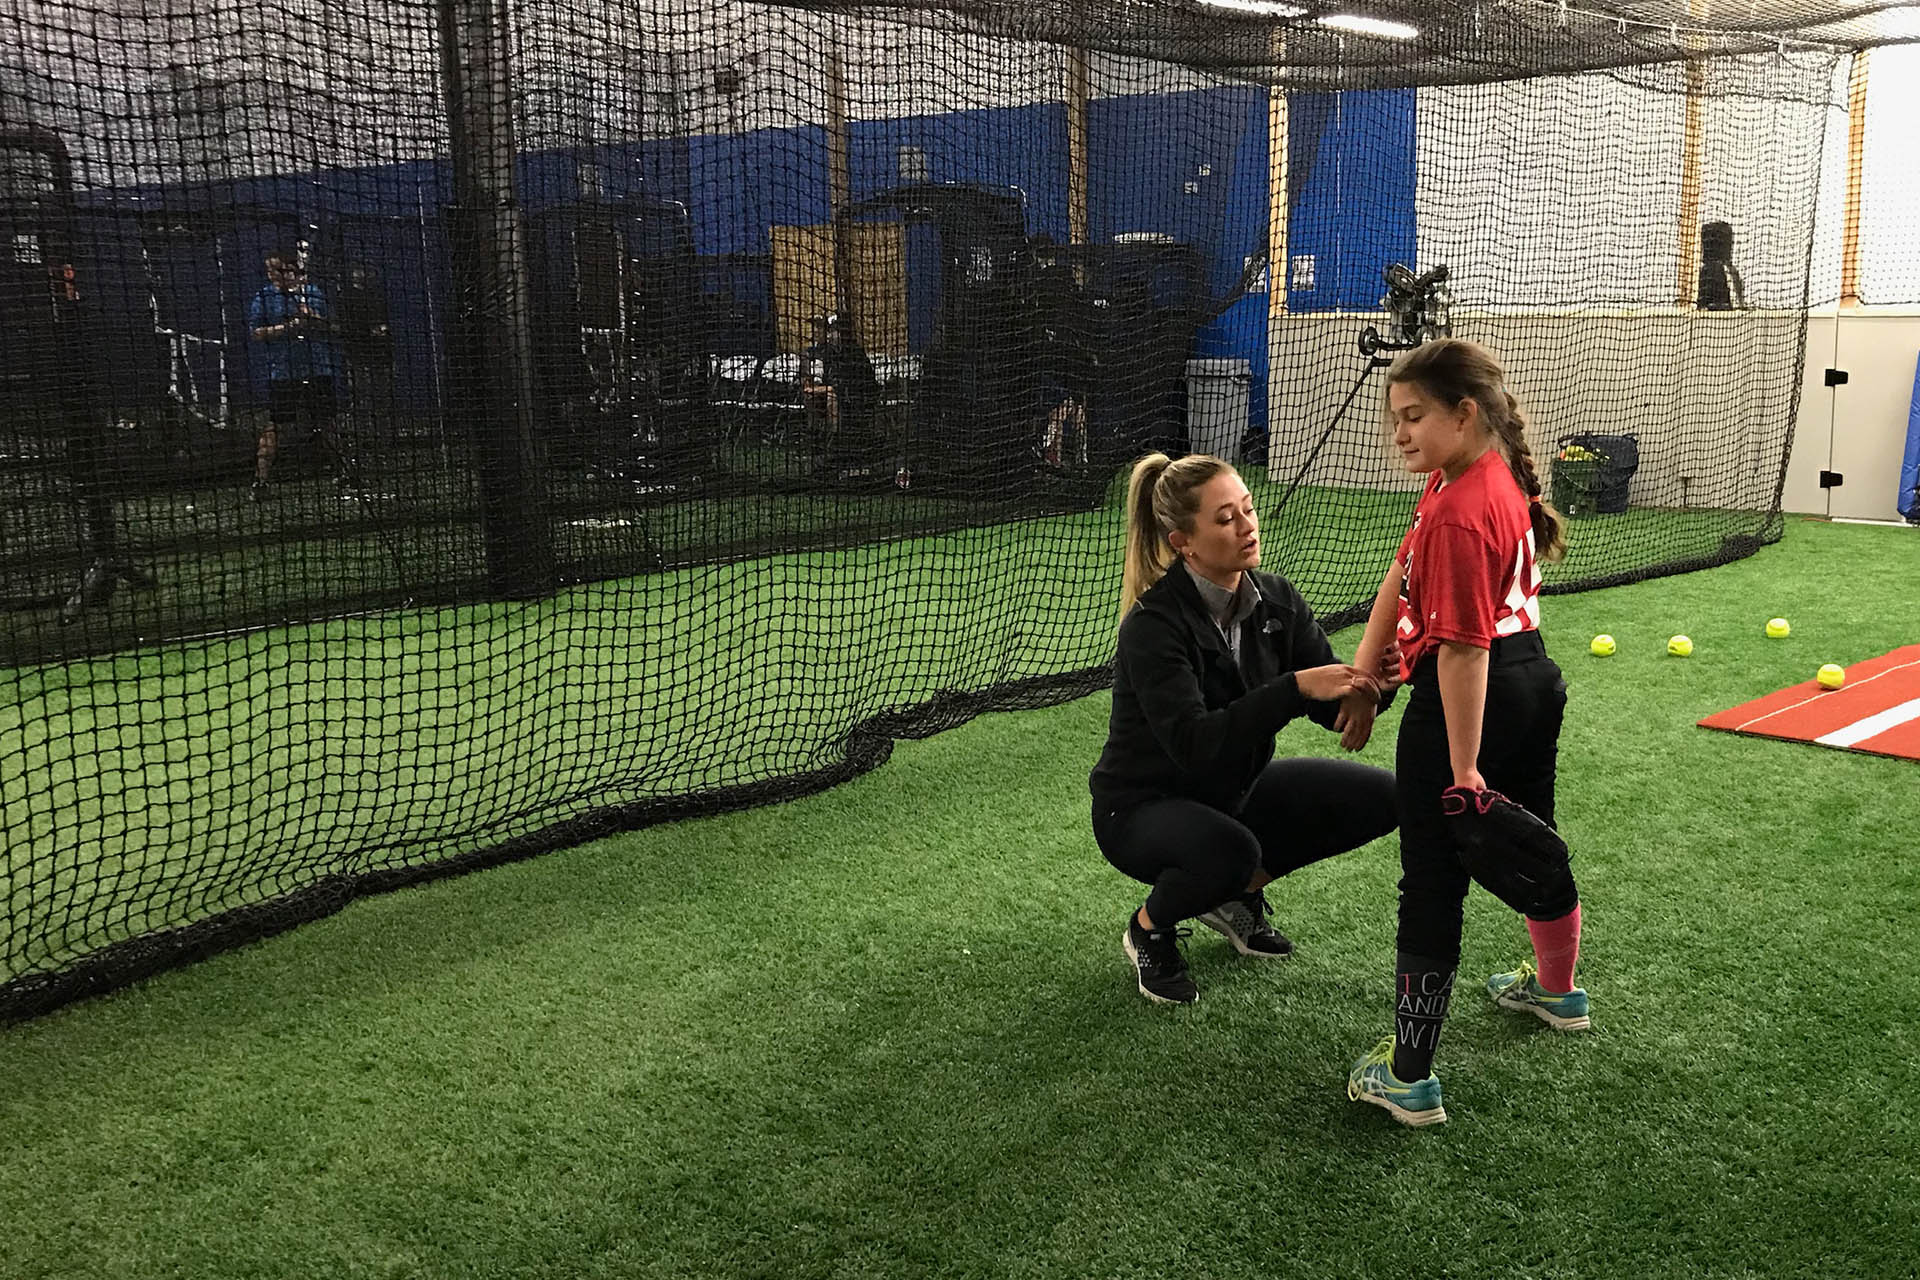 Softball pitcher teaching young girl